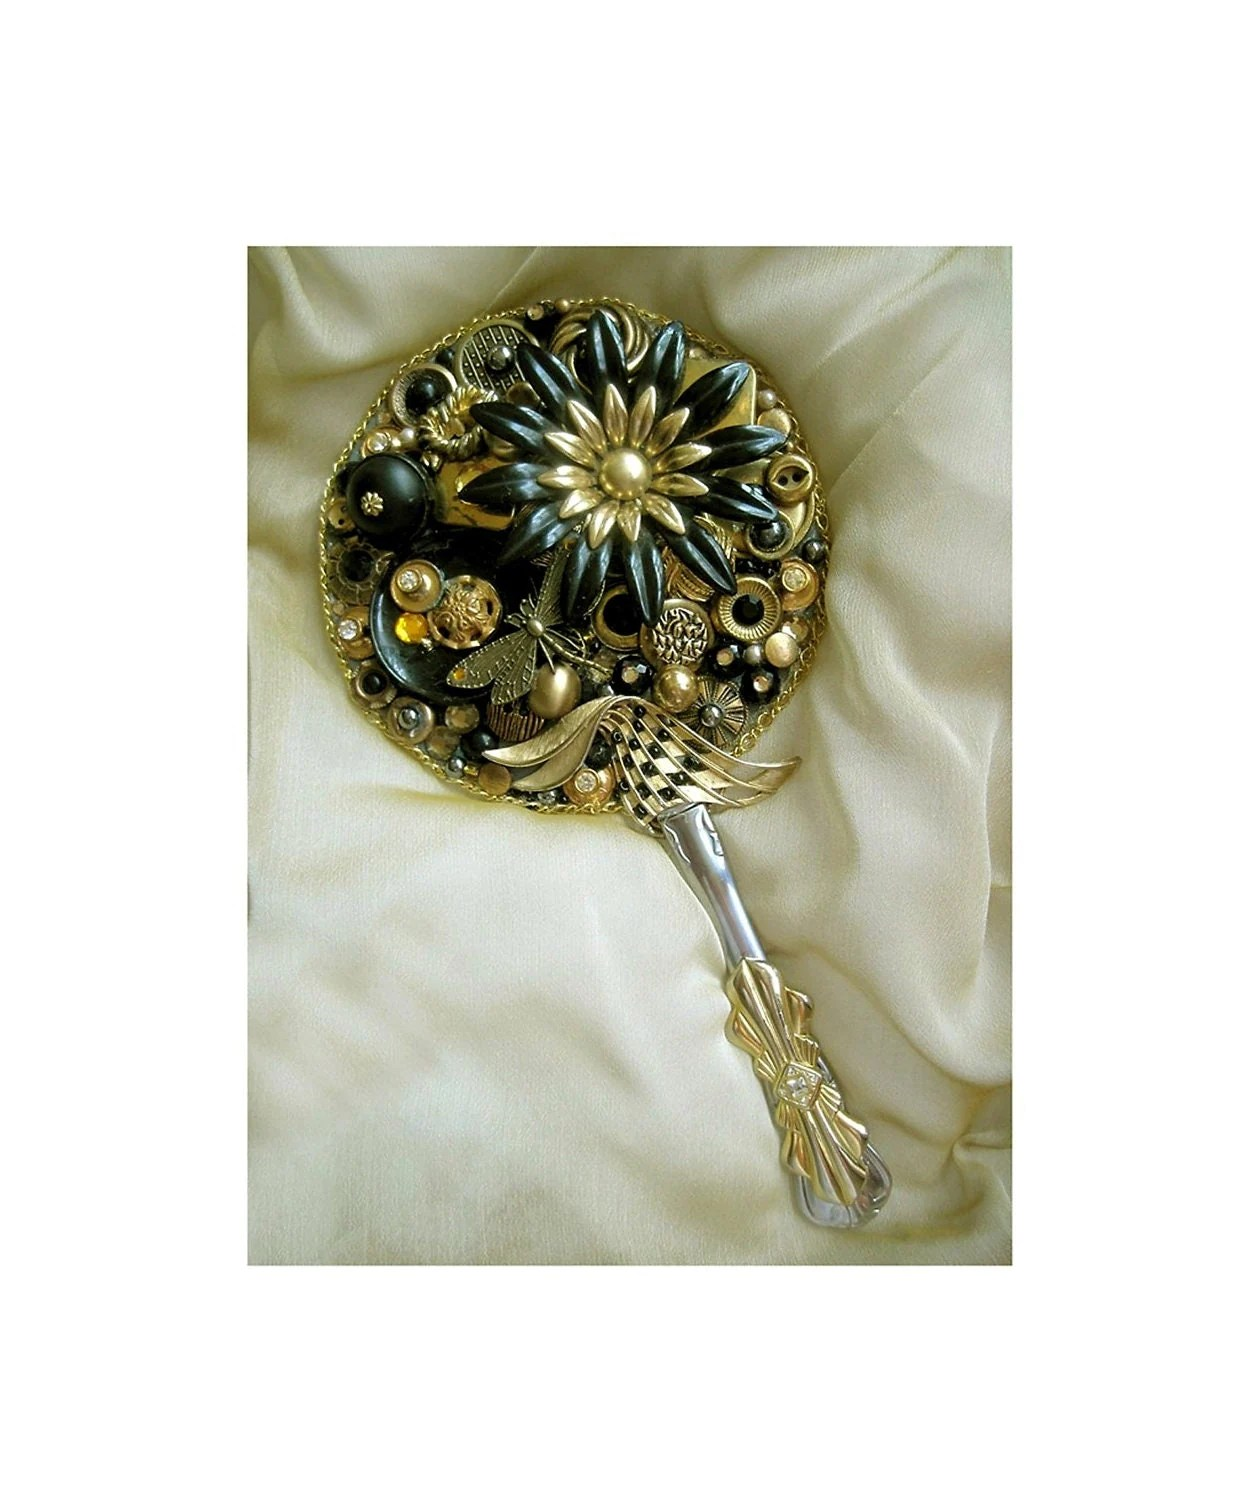 Hand Held Mirror Recycled Vintage Jewelry Buttons Fantasy